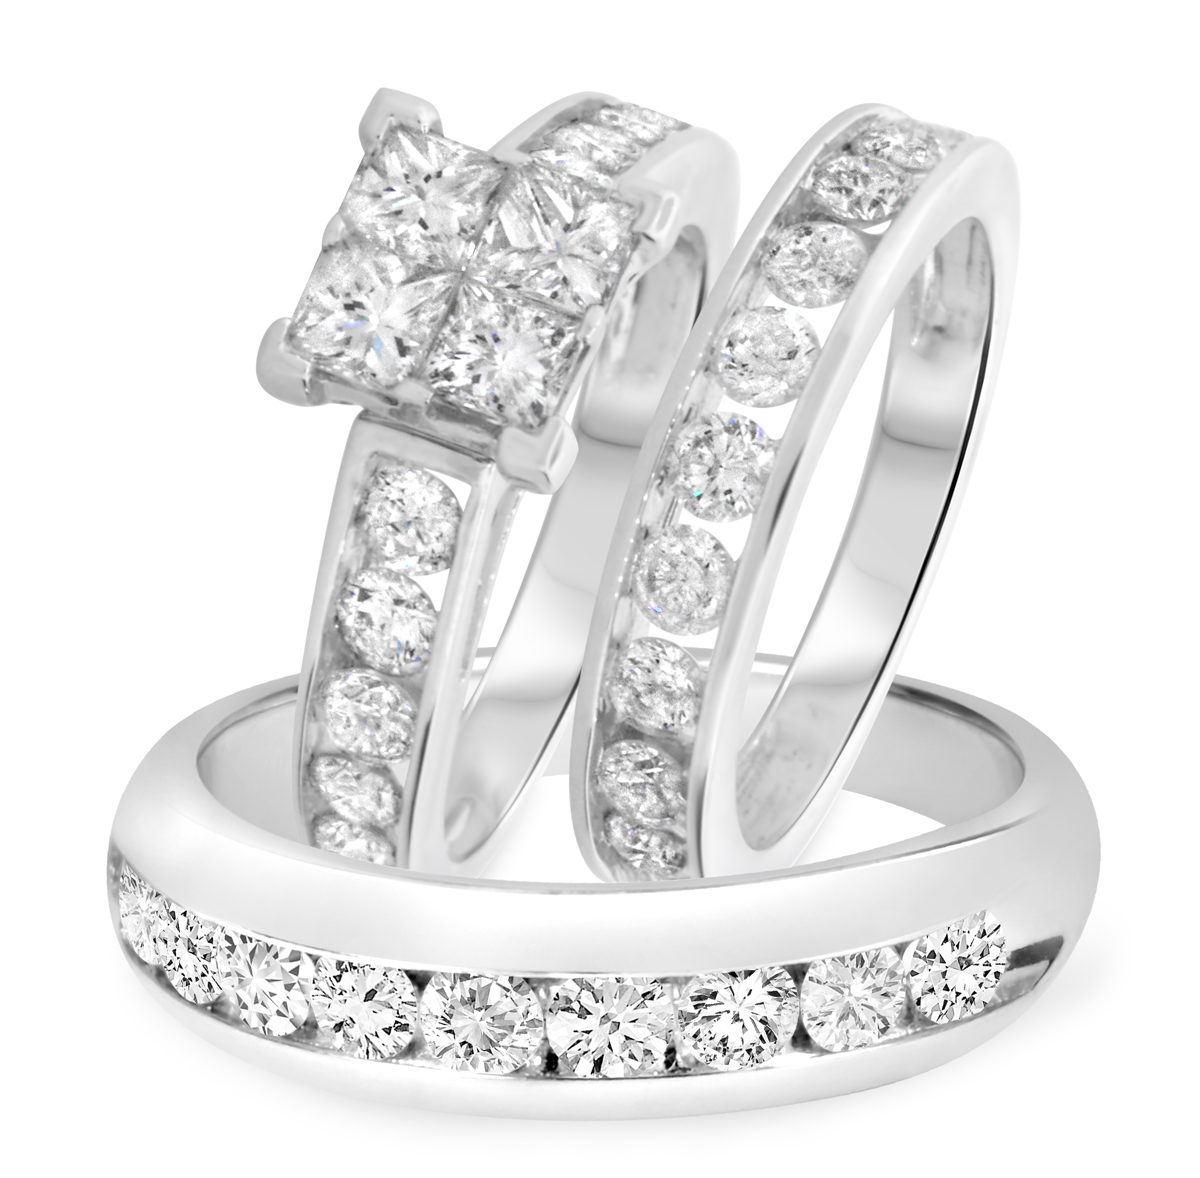 4 Carat T.W. Princess, Round Cut Diamond Trio Wedding Set 14K White Gold